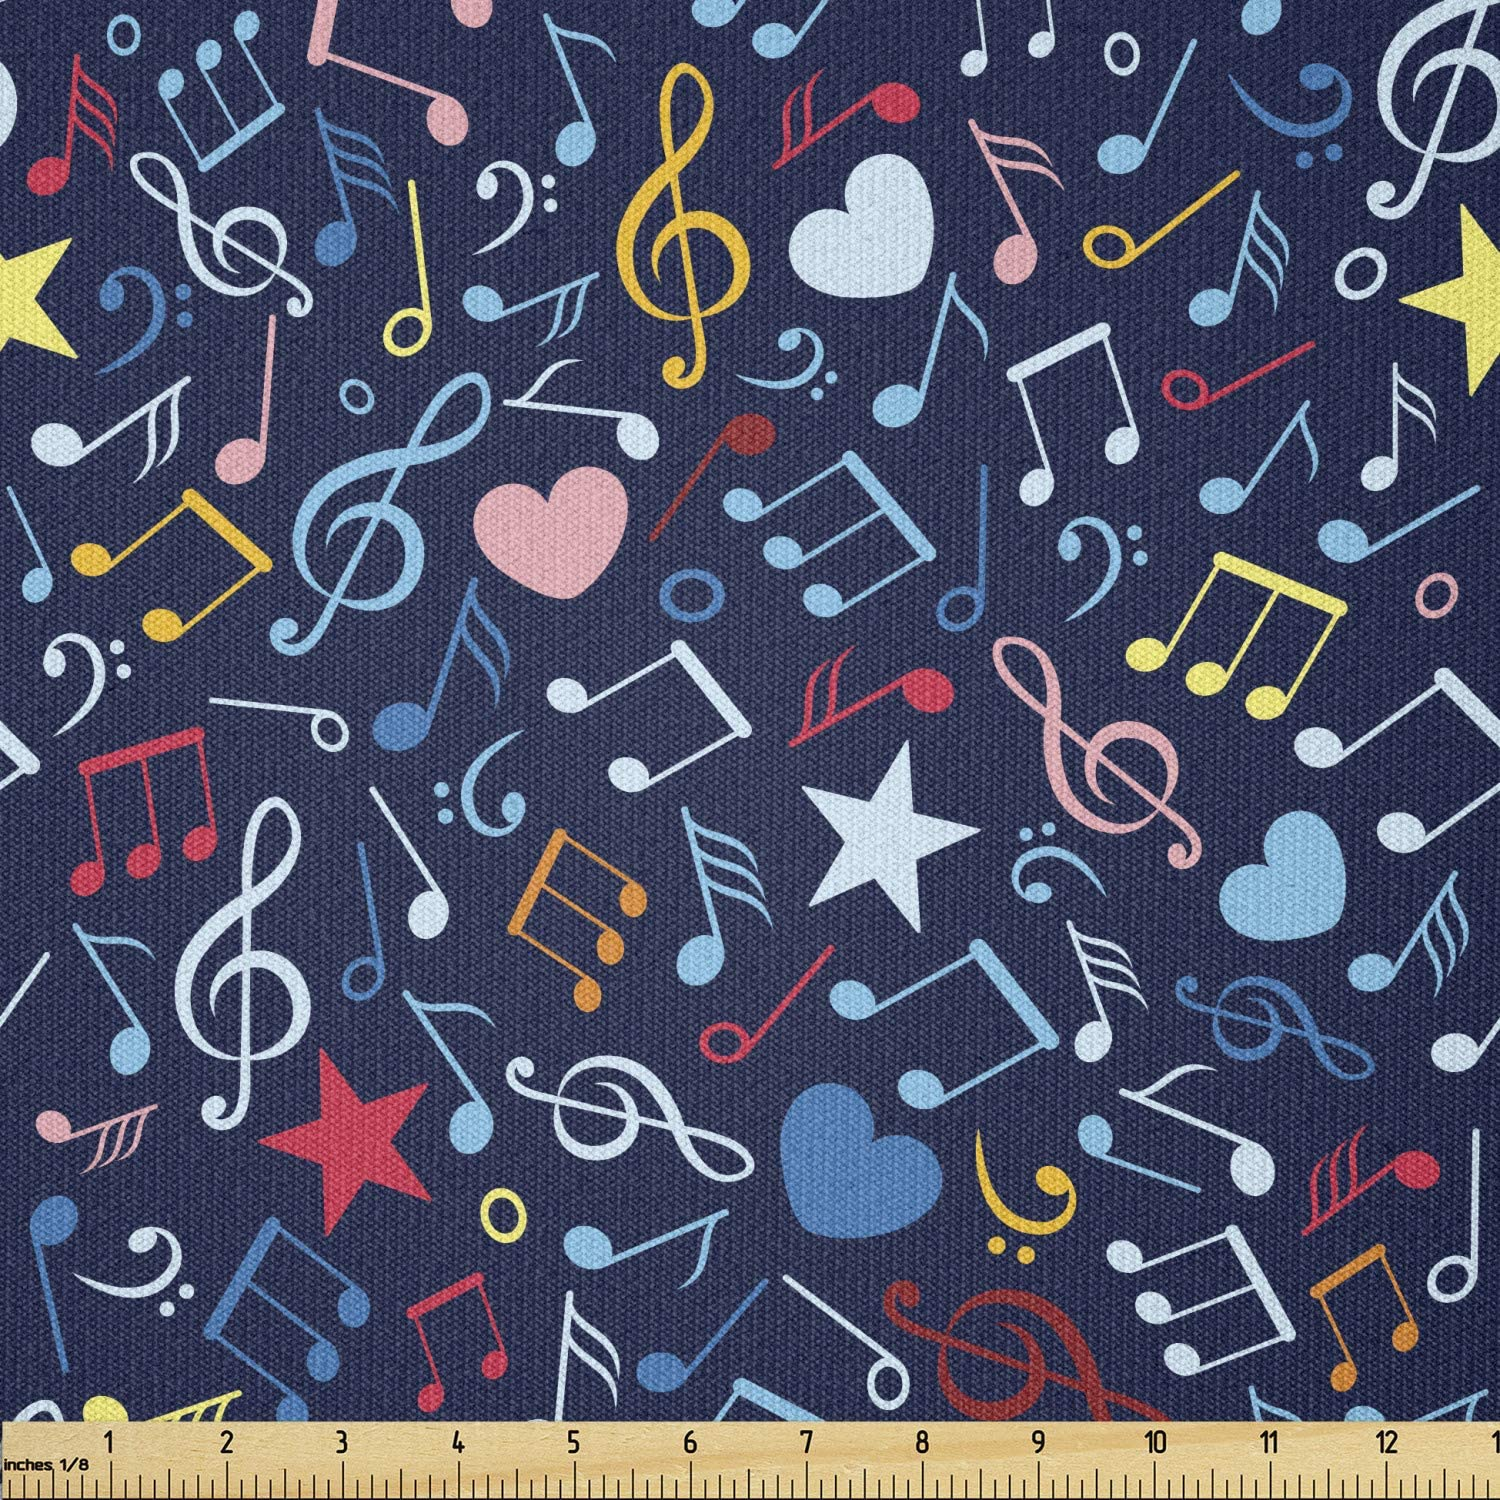 Ambesonne Music Fabric by The Yard, Hearts Notes Stars Melodic Inspiration Musical Lifestyle Rhythm in My Heart Design, Stretch Knit Fabric for Clothing Sewing and Arts Crafts, 1 Yard, Indigo Red